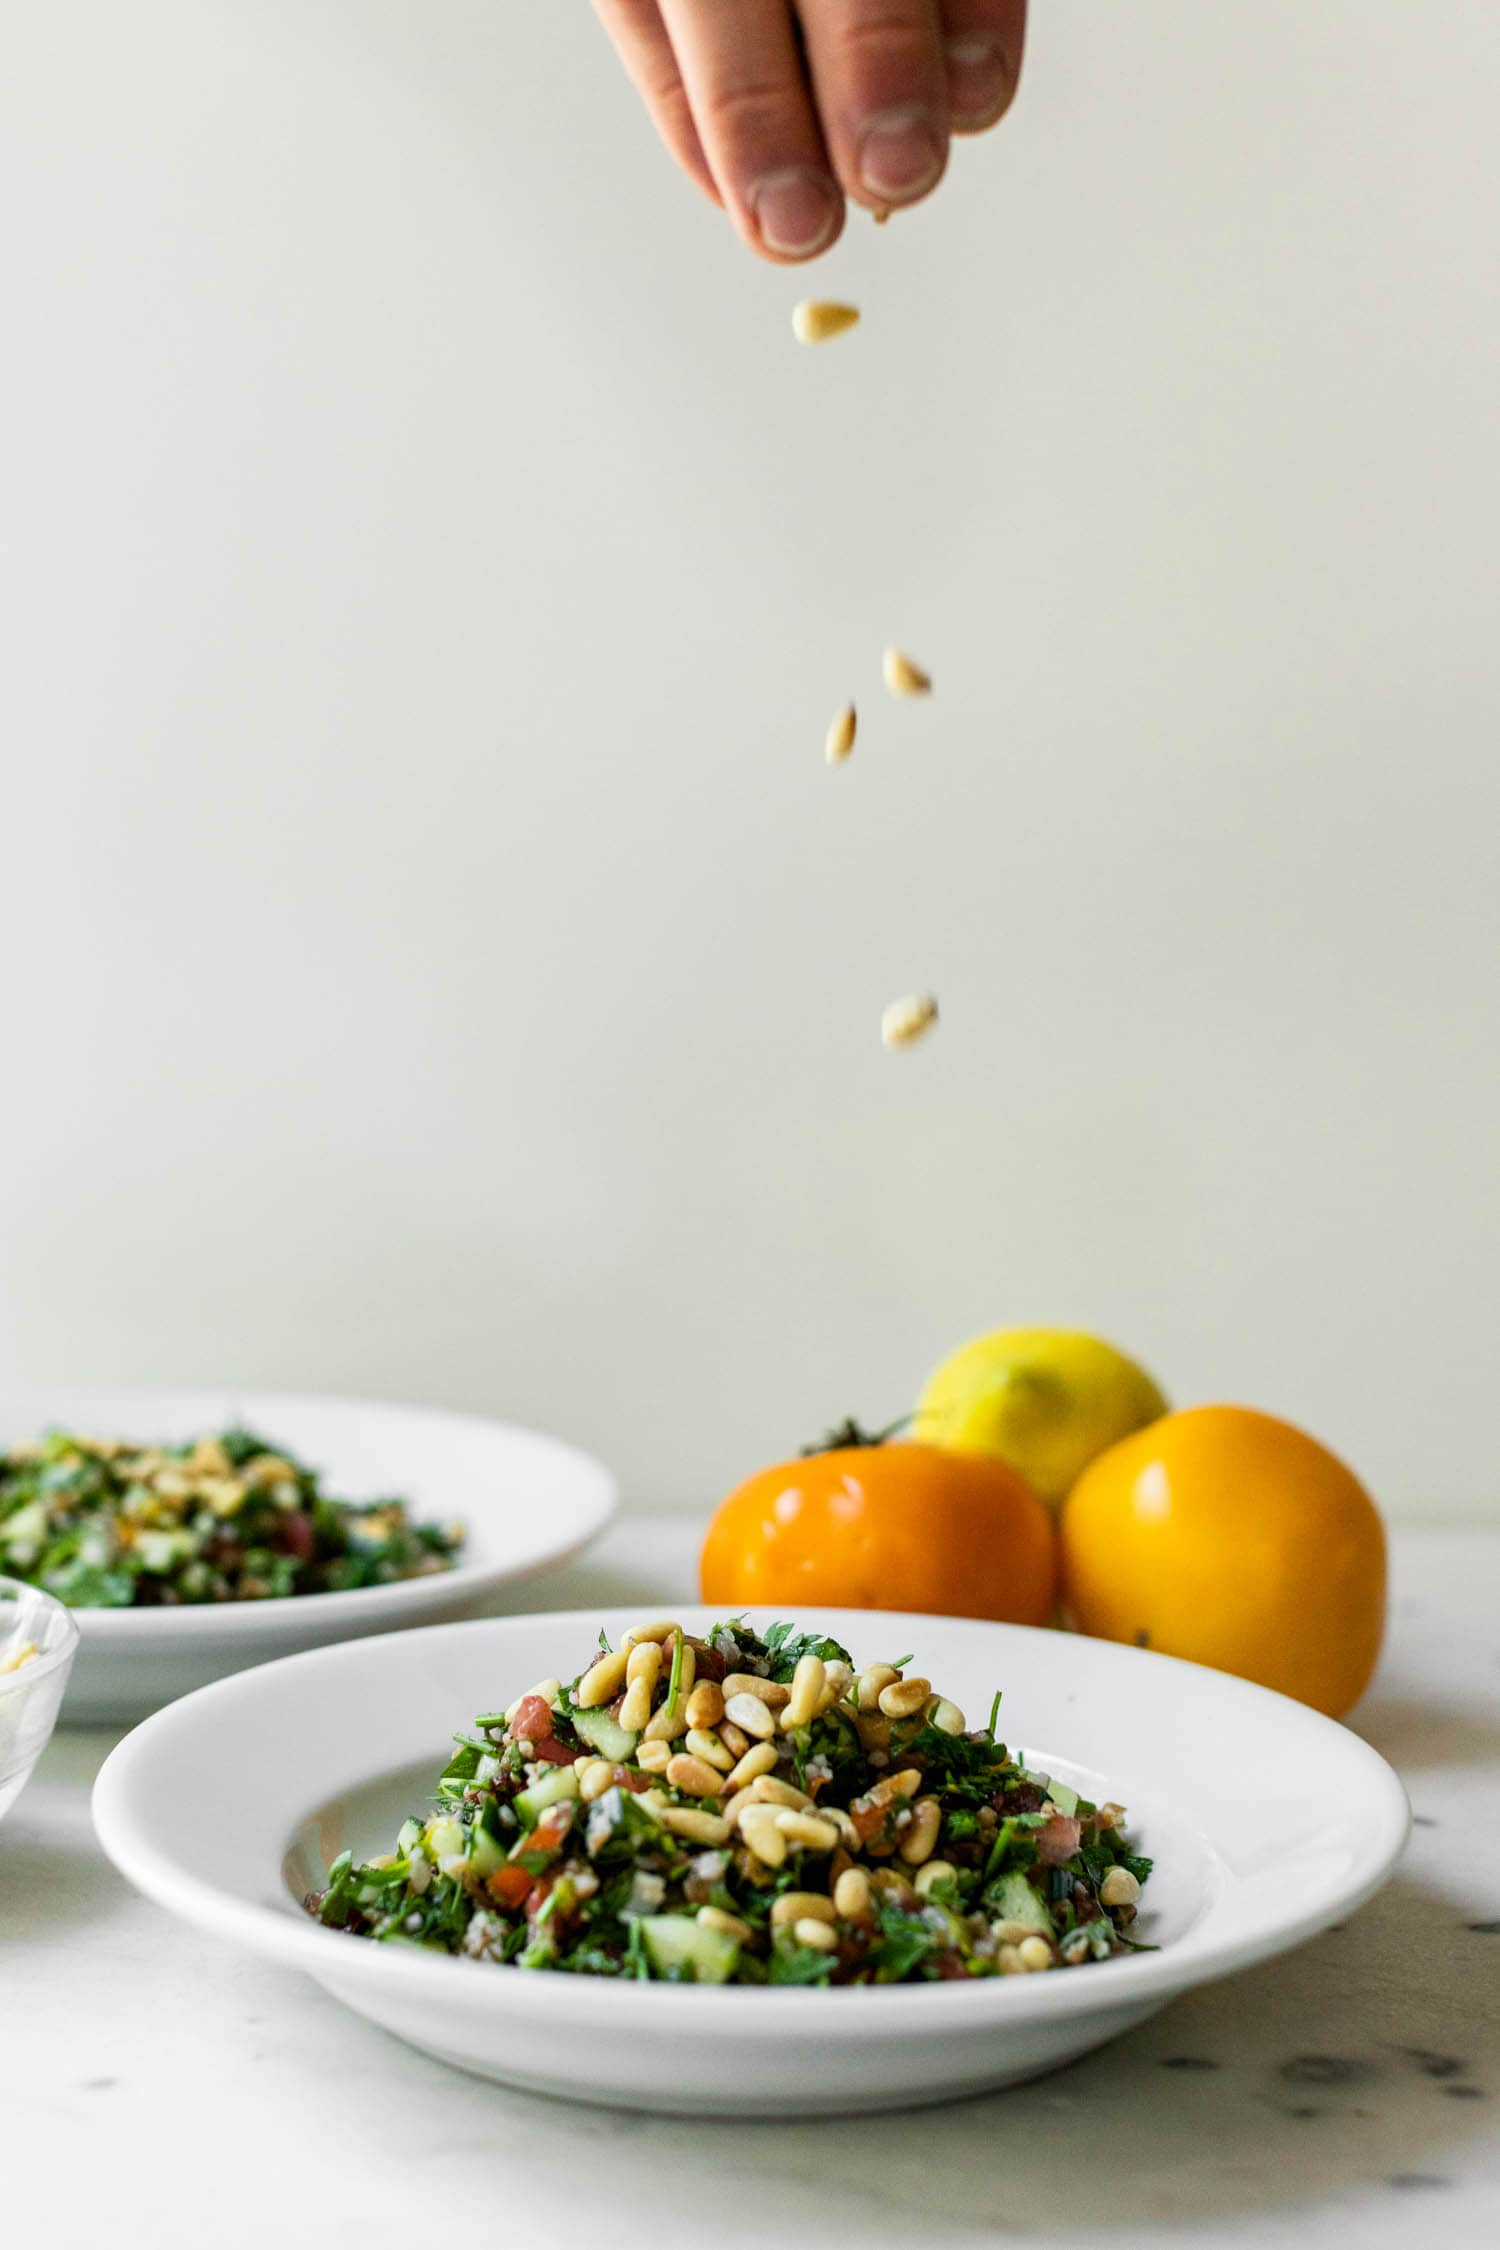 Bowl full of tabbouleh topped with pine nuts with hand at top of picture sprinkling more pine nuts on top with tomatoes and second bowl in background on marble surface